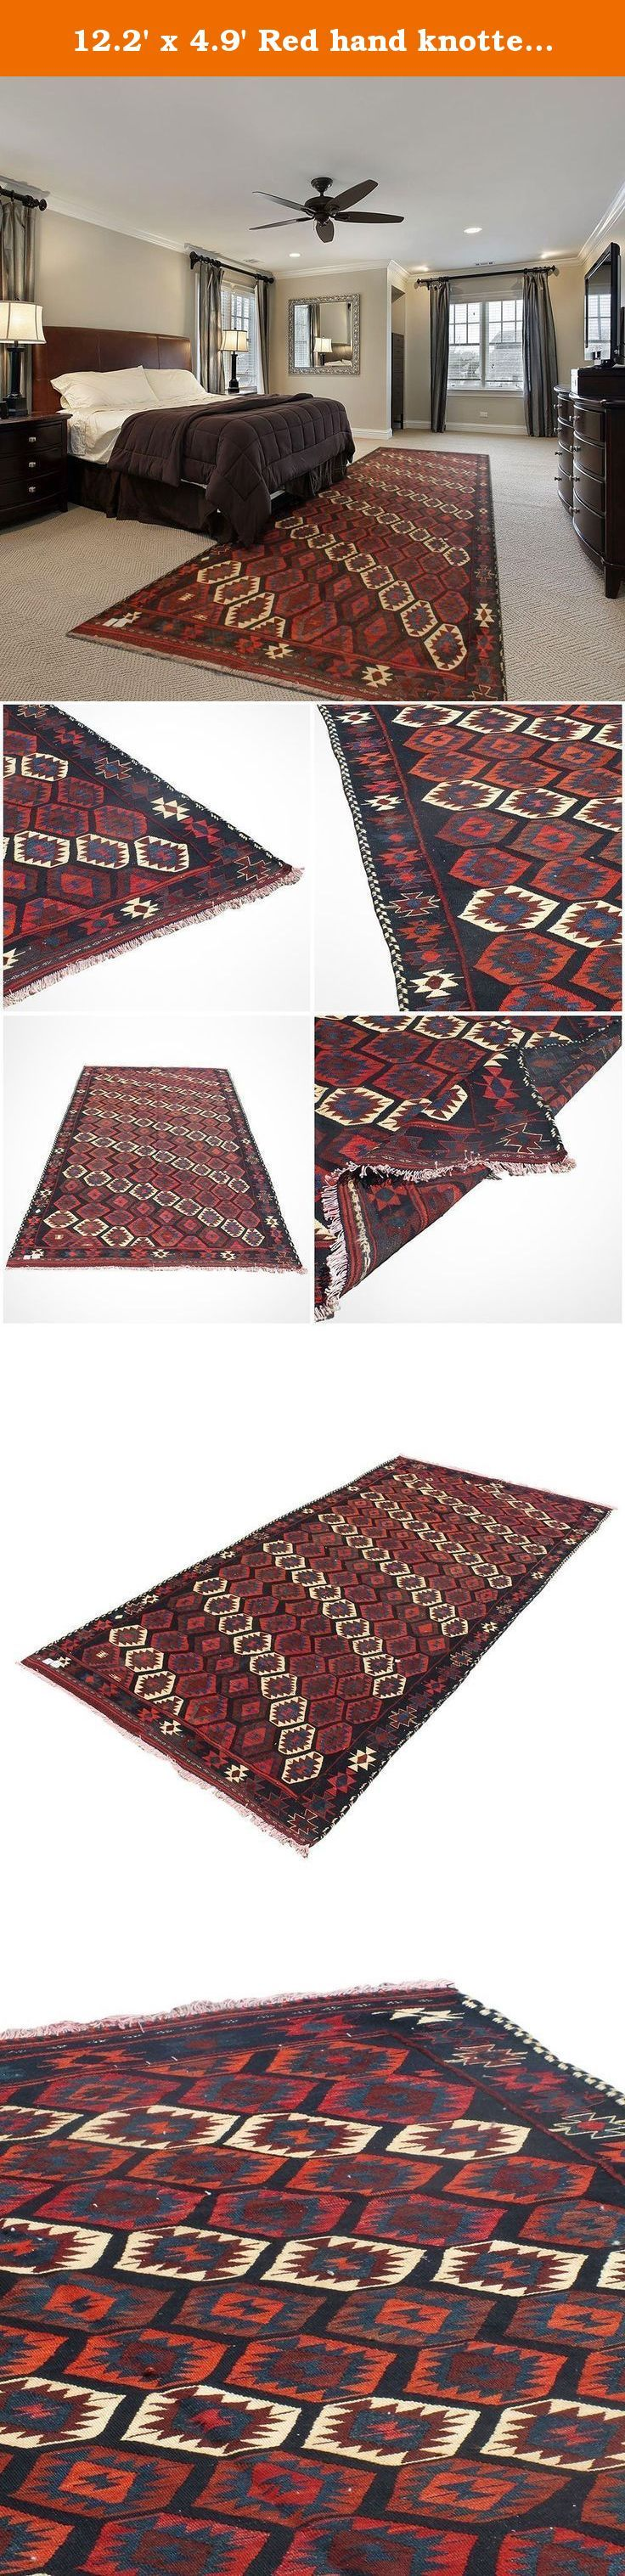 """12.2' x 4.9' Red hand knotted Kilim rug, Wool Oriental Kilim rug, Traditional design Kilim rug. Code:R0101475. hand woven rug which comes from a pure lamb wool sheared at the Beginning of spring and a mixture of organic colors. It would make your place more attractive with its red and color. Really traditional and Classic design. Size: 12'2"""" x 4'9"""" Weight: 29 Ib Product's Code: R0101475 As an advantages of years of being in this business our price is lower in comparison with other carpet..."""